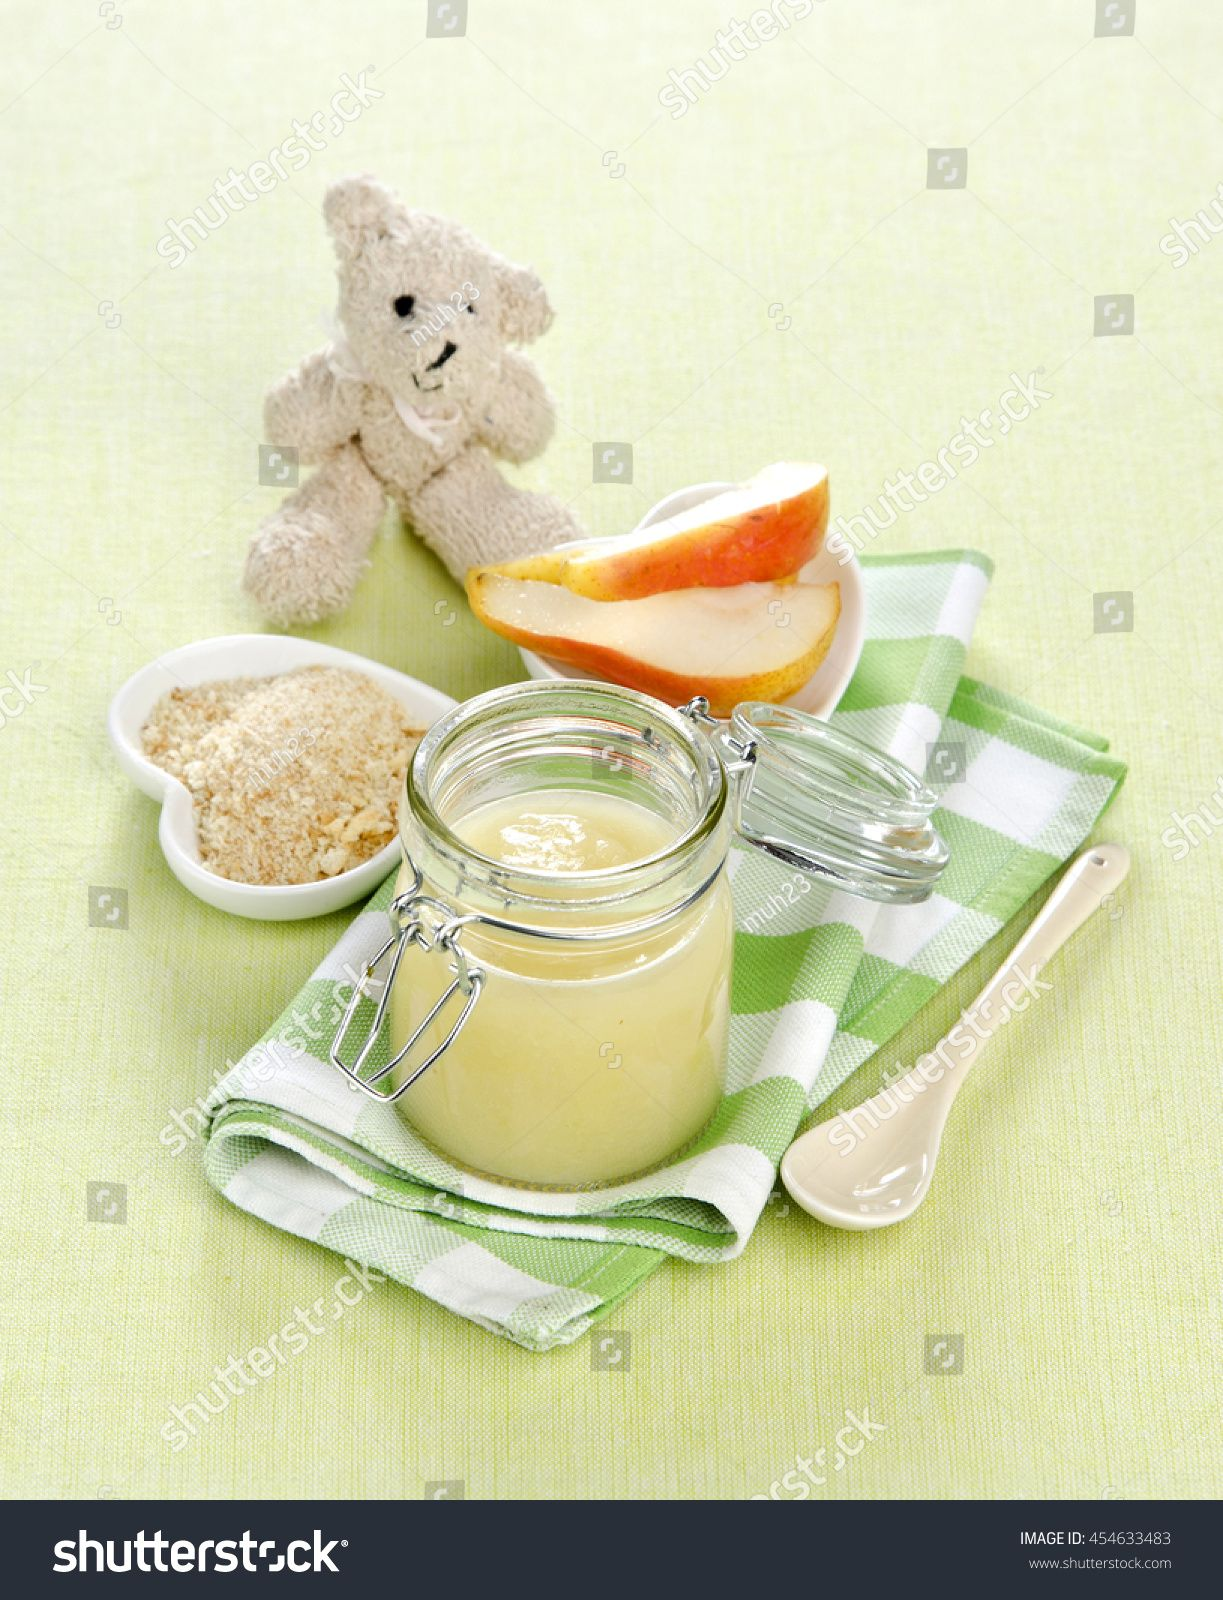 baby food puree of pear fruit in a bank with a toy bear